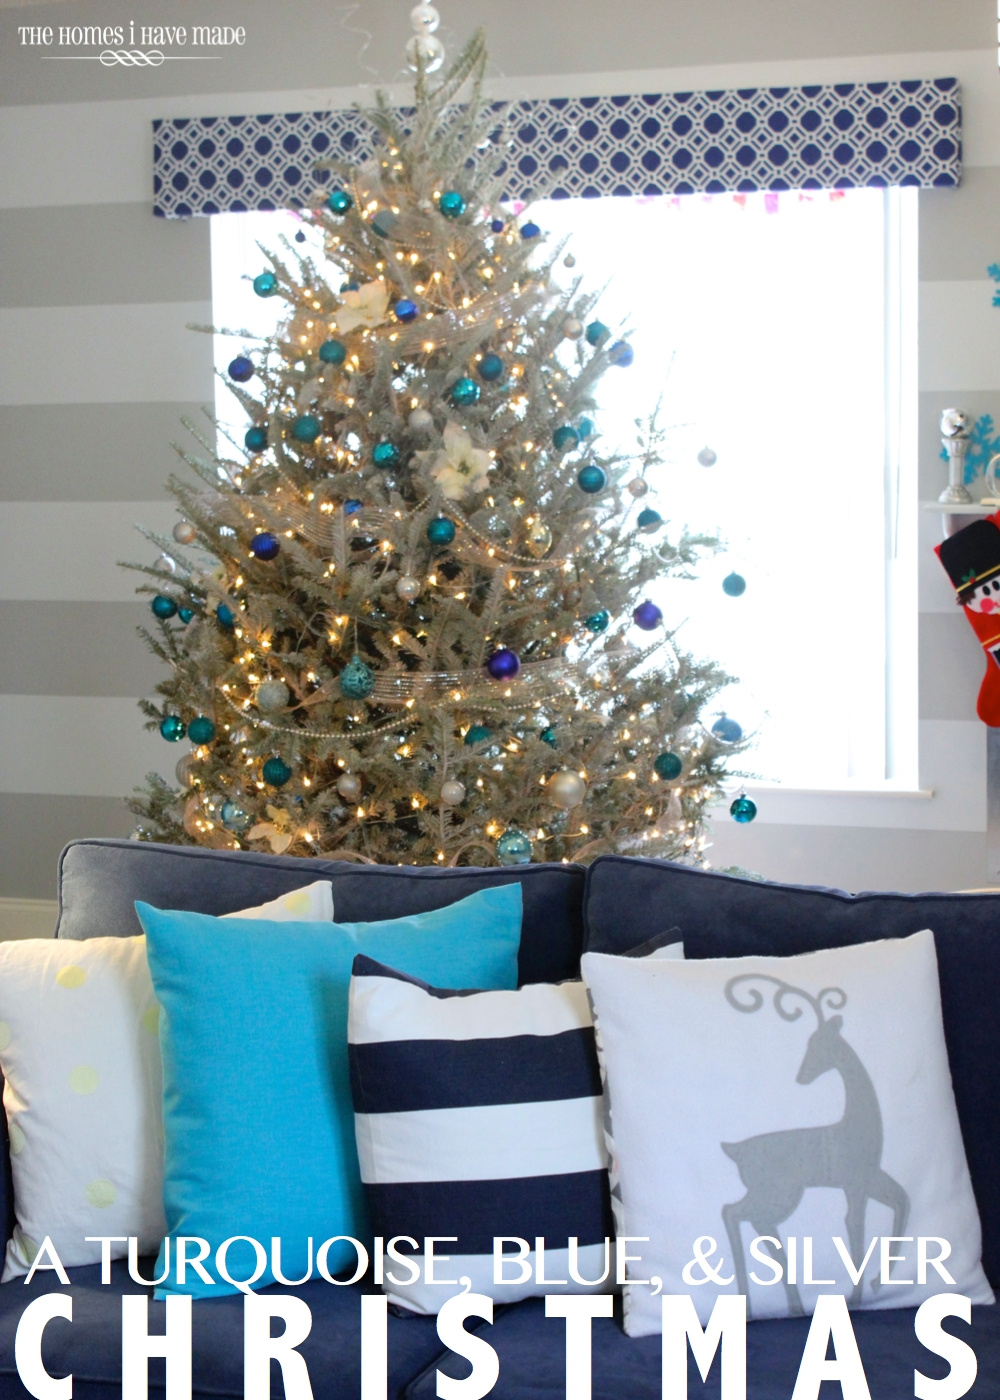 ... Blue, and Silver Christmas! Holiday Living Room 2013-001